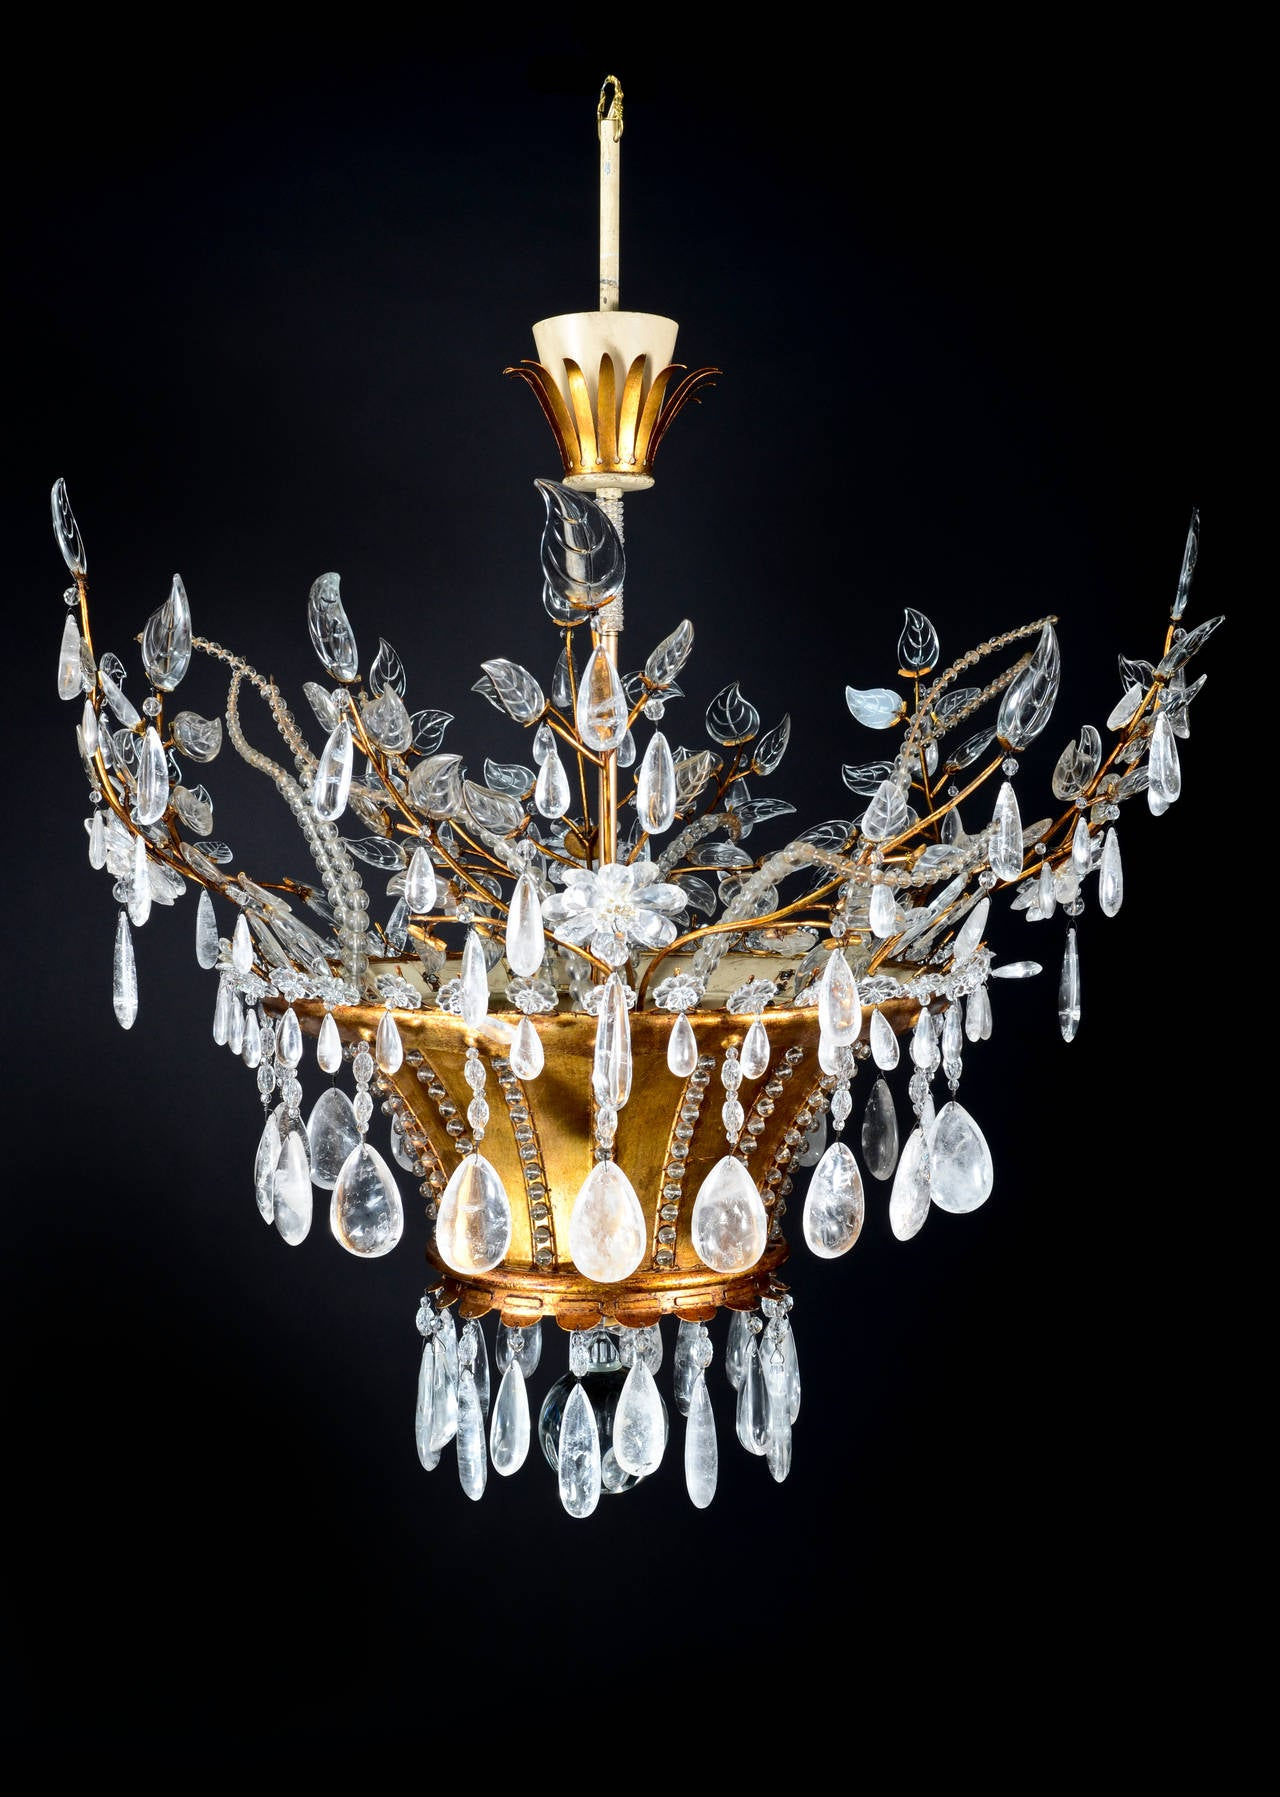 Magnificent antique french louis xvi style bagues rock crystal a magnificent and unique antique bagues french louis xvi style gilt bronze cut rock crystal aloadofball Choice Image